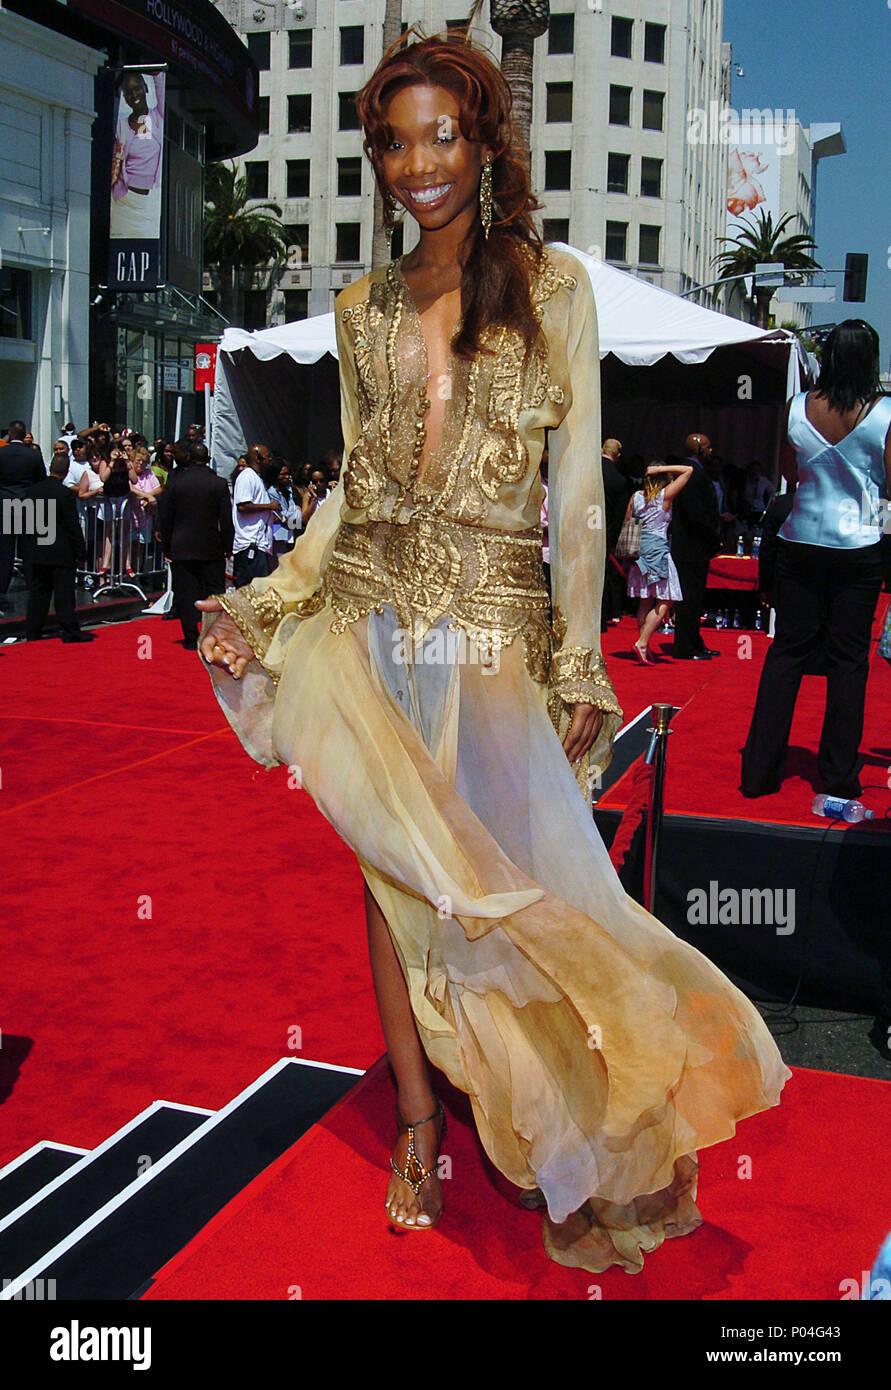 Brandy Event In Hollywood Life California High Resolution Stock Photography And Images Alamy